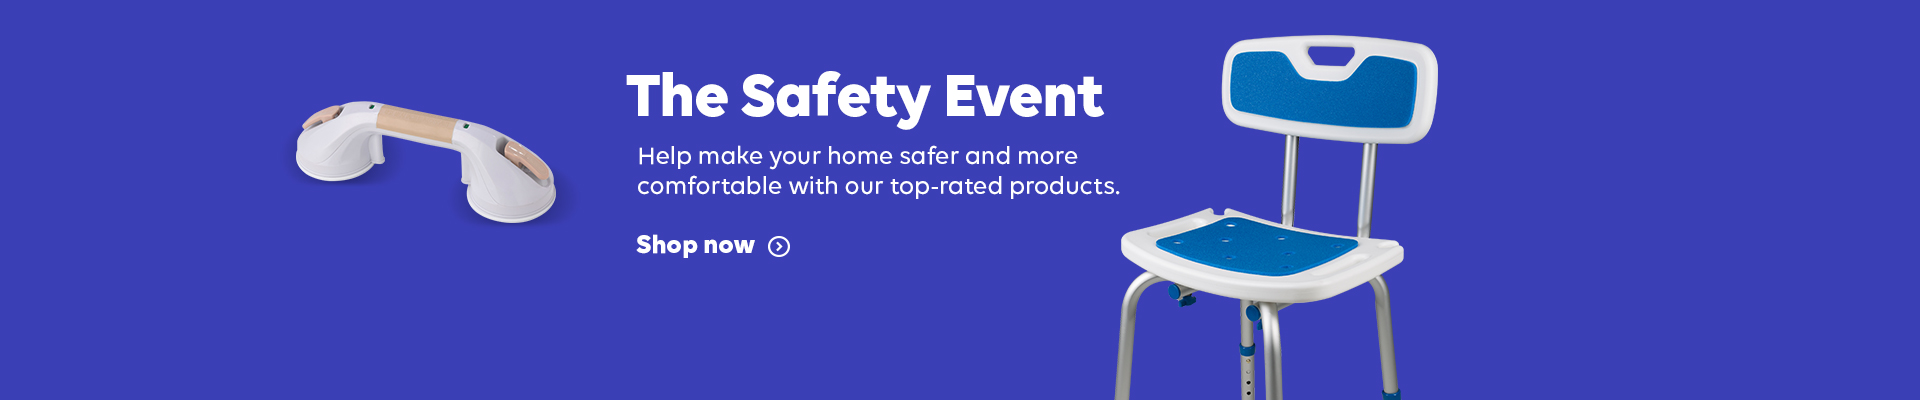 Wellwise by Shoppers Drug Mart. The Safety Event. Help make your home safer and more comfortable with our top-rated products. Shop now.